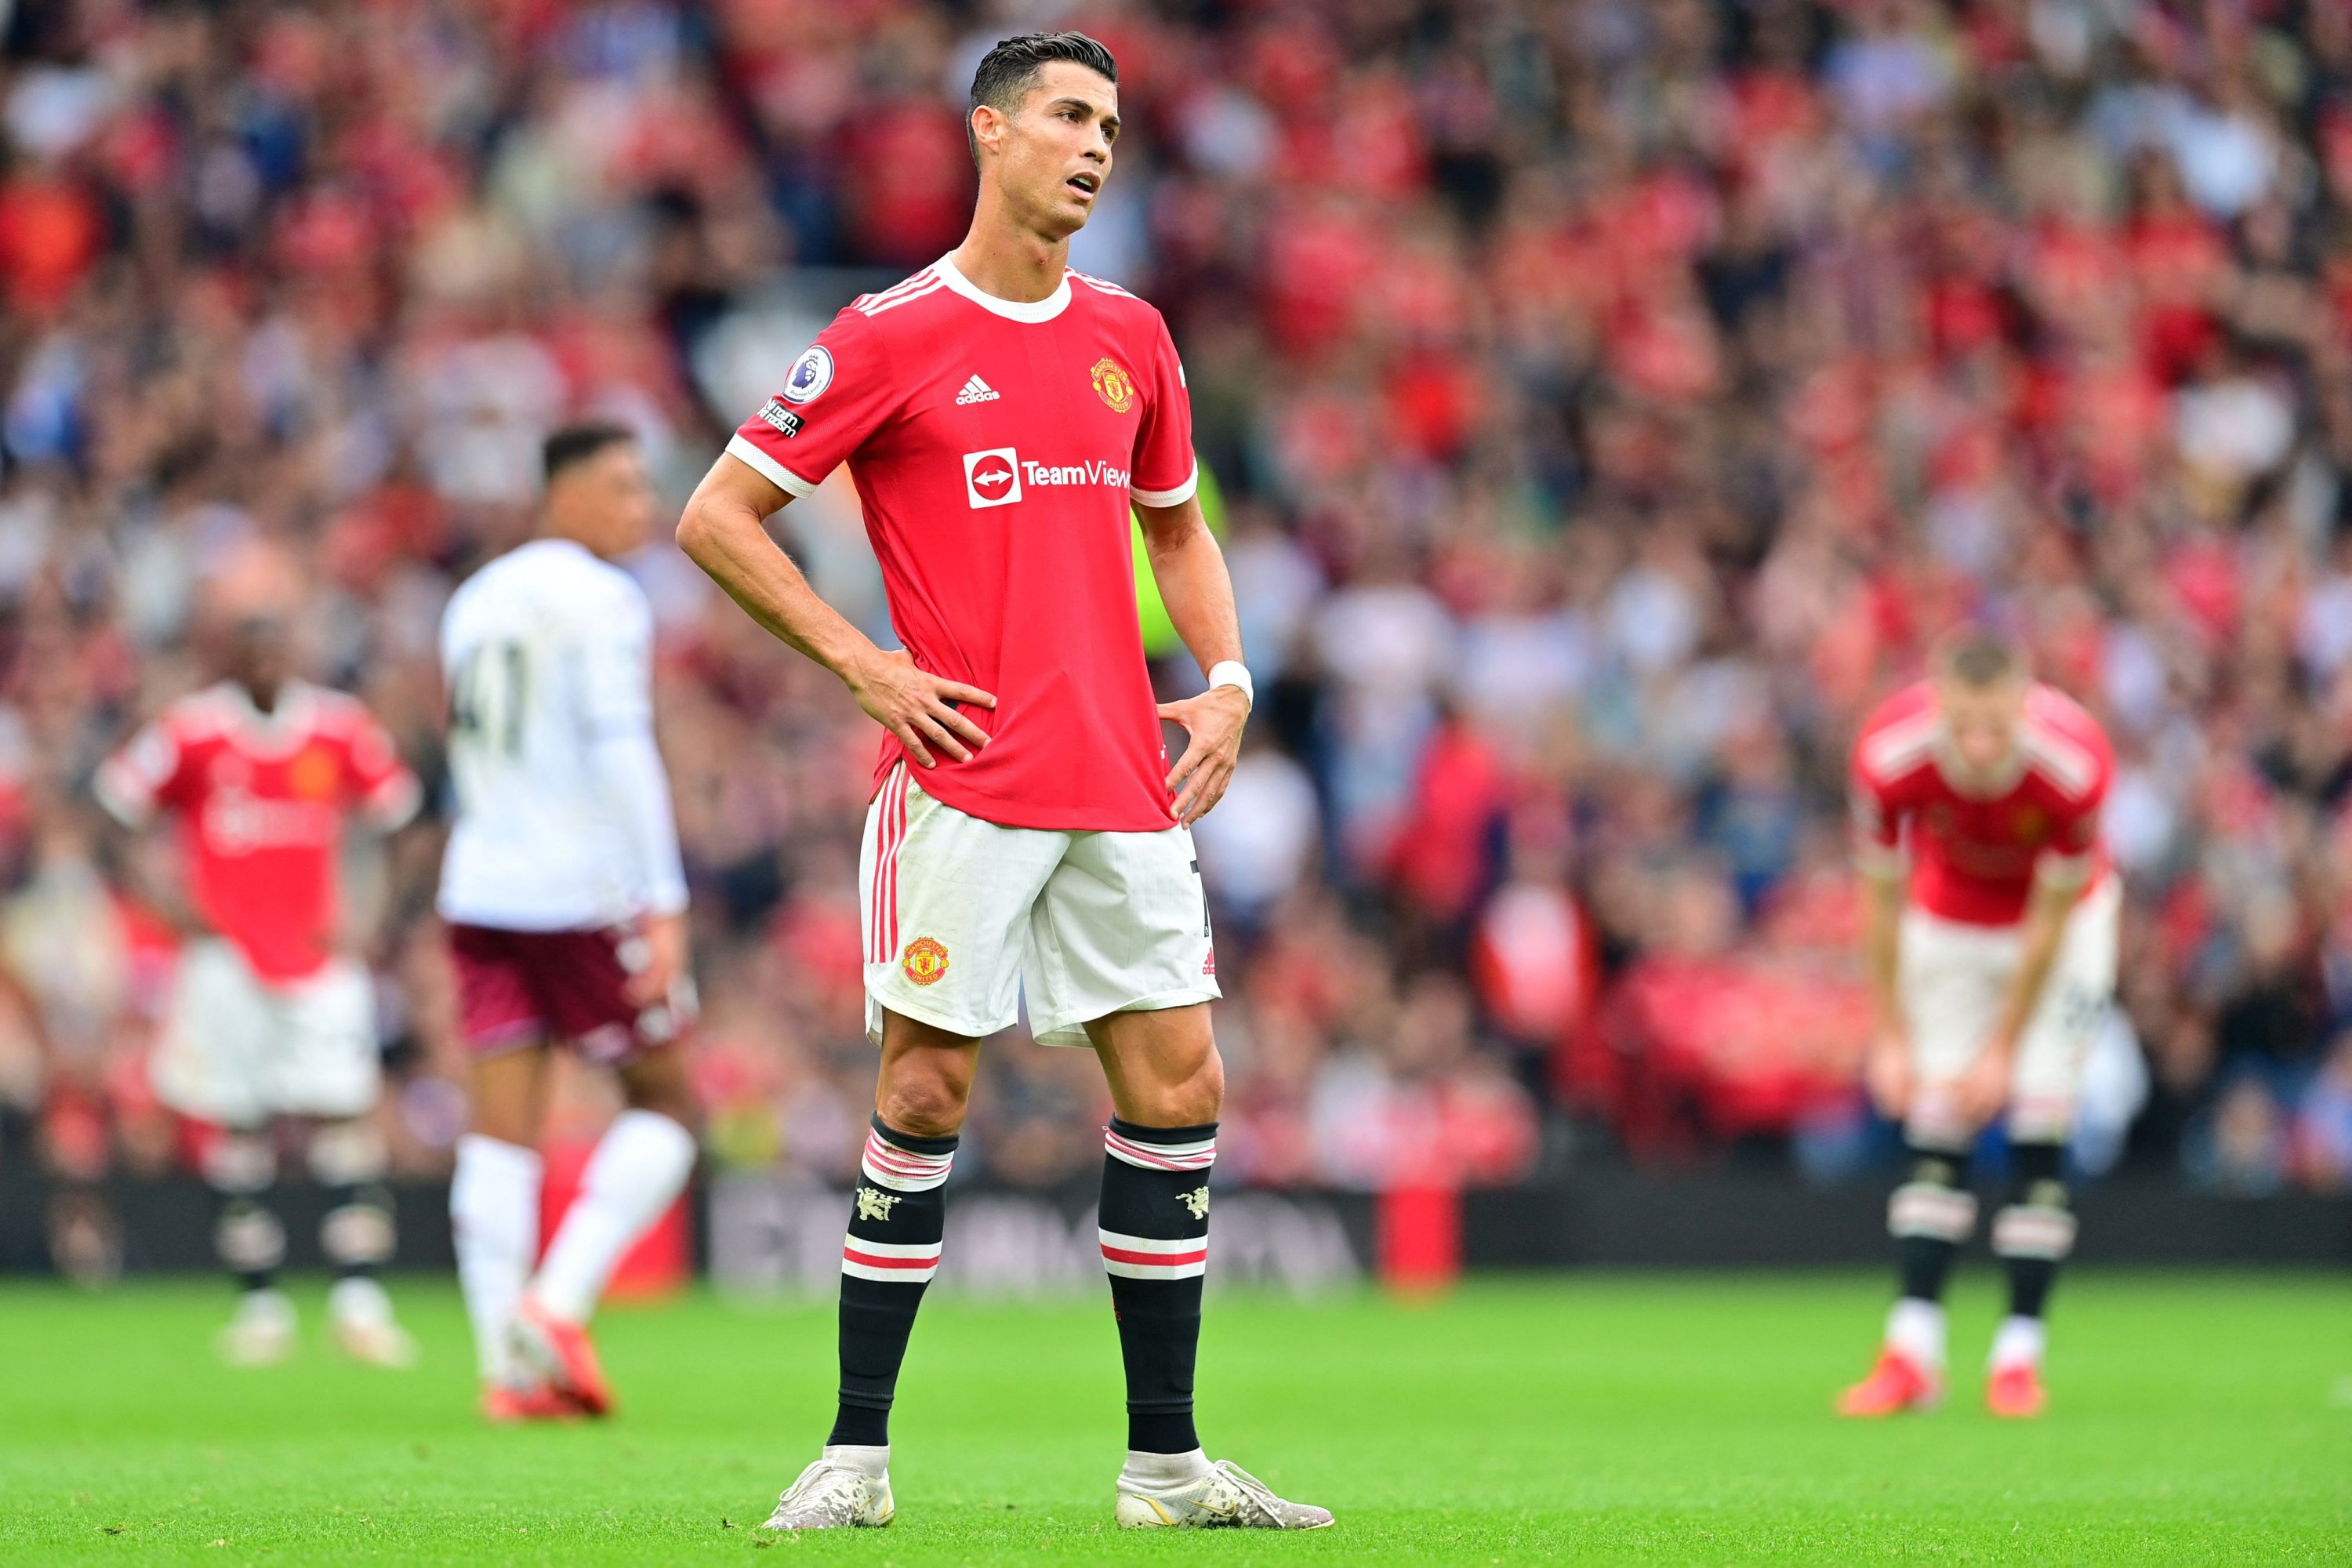 Manchester United's Portuguese striker Cristiano Ronaldo reacts during a Premier League football match against Aston Villa at Old Trafford in Manchester, England, Sept. 25, 2021. (AFP Photo)